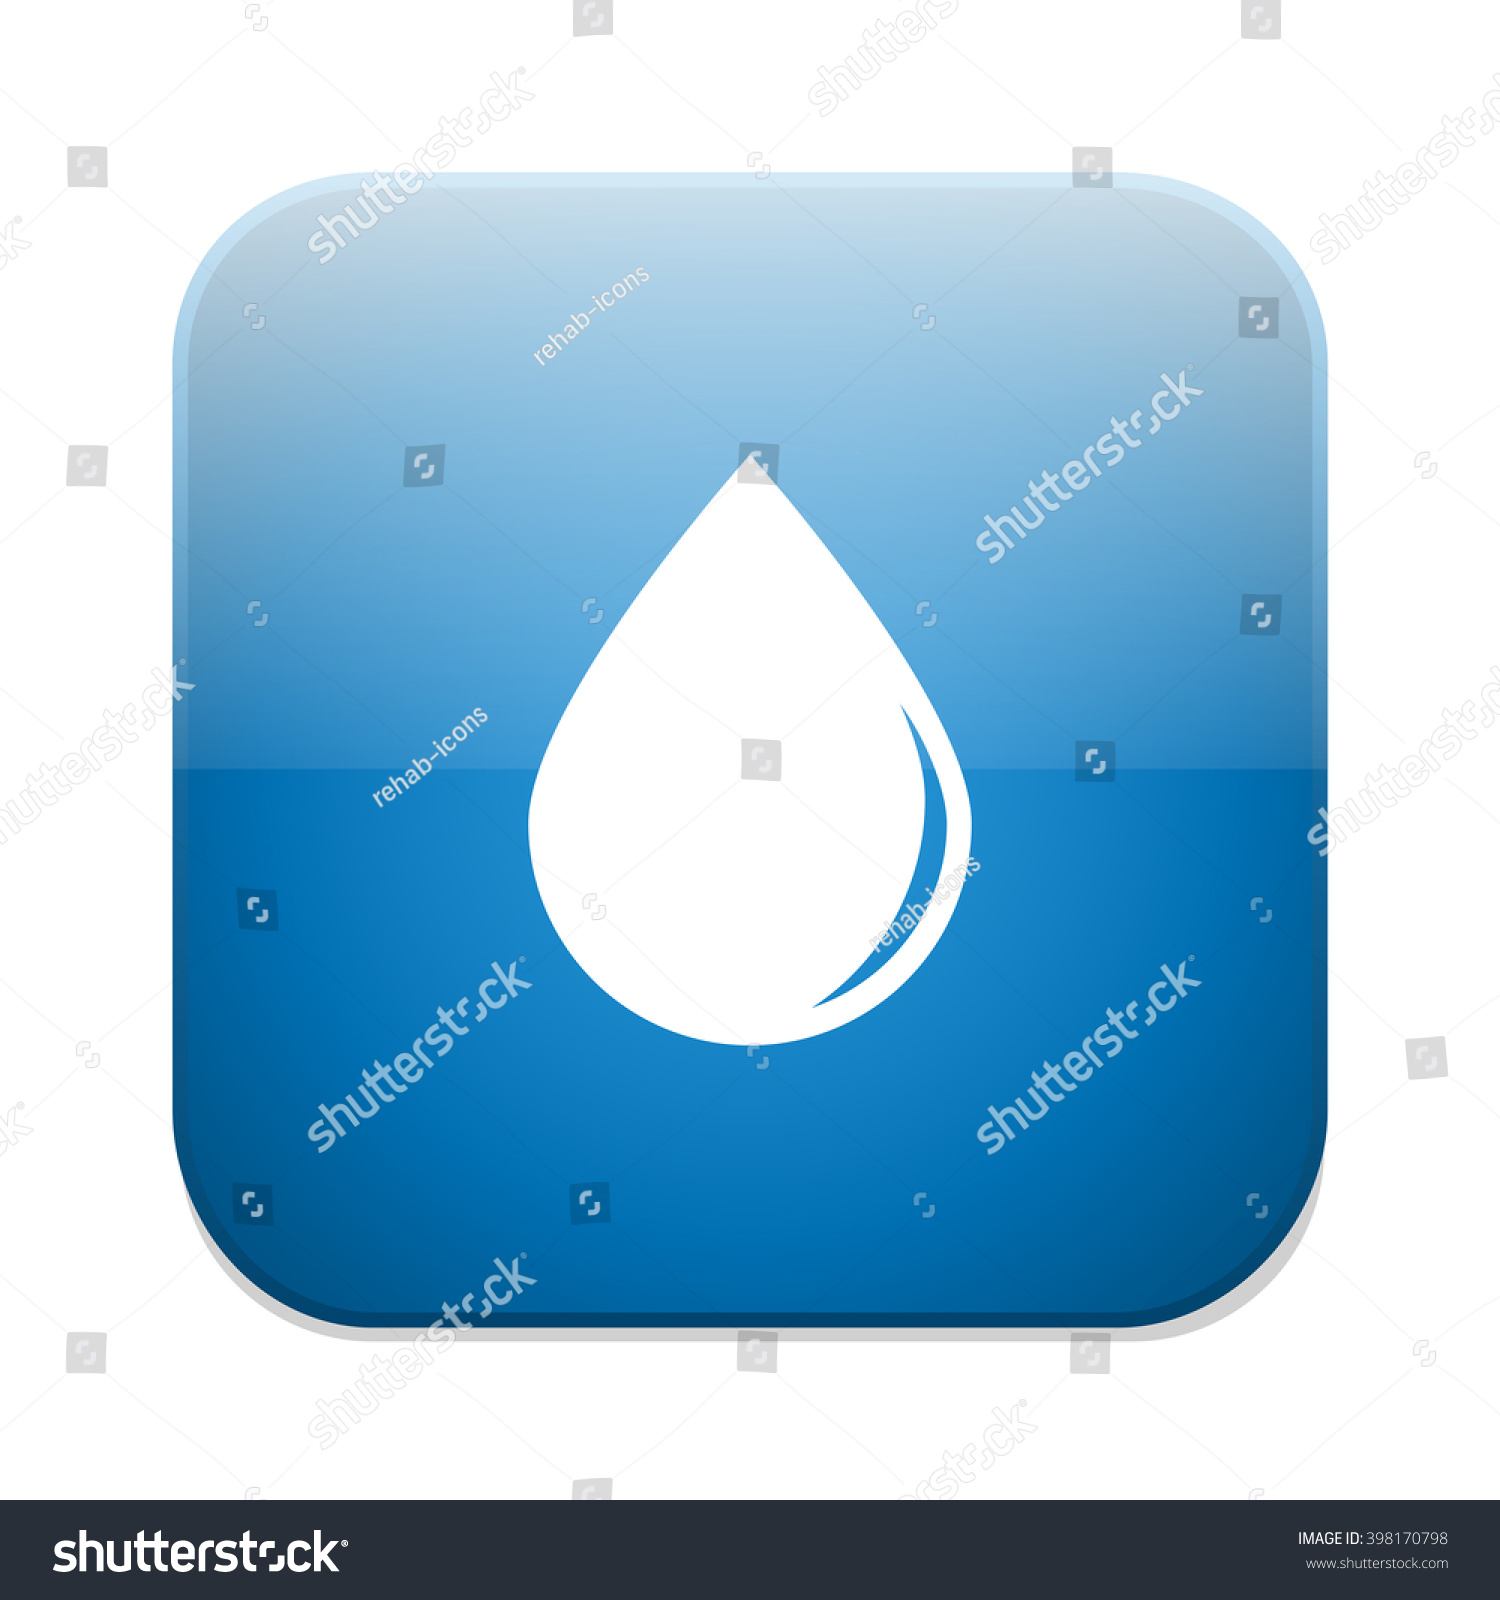 Water drop icon tear symbol stock vector 398170798 shutterstock water drop icon tear symbol biocorpaavc Image collections